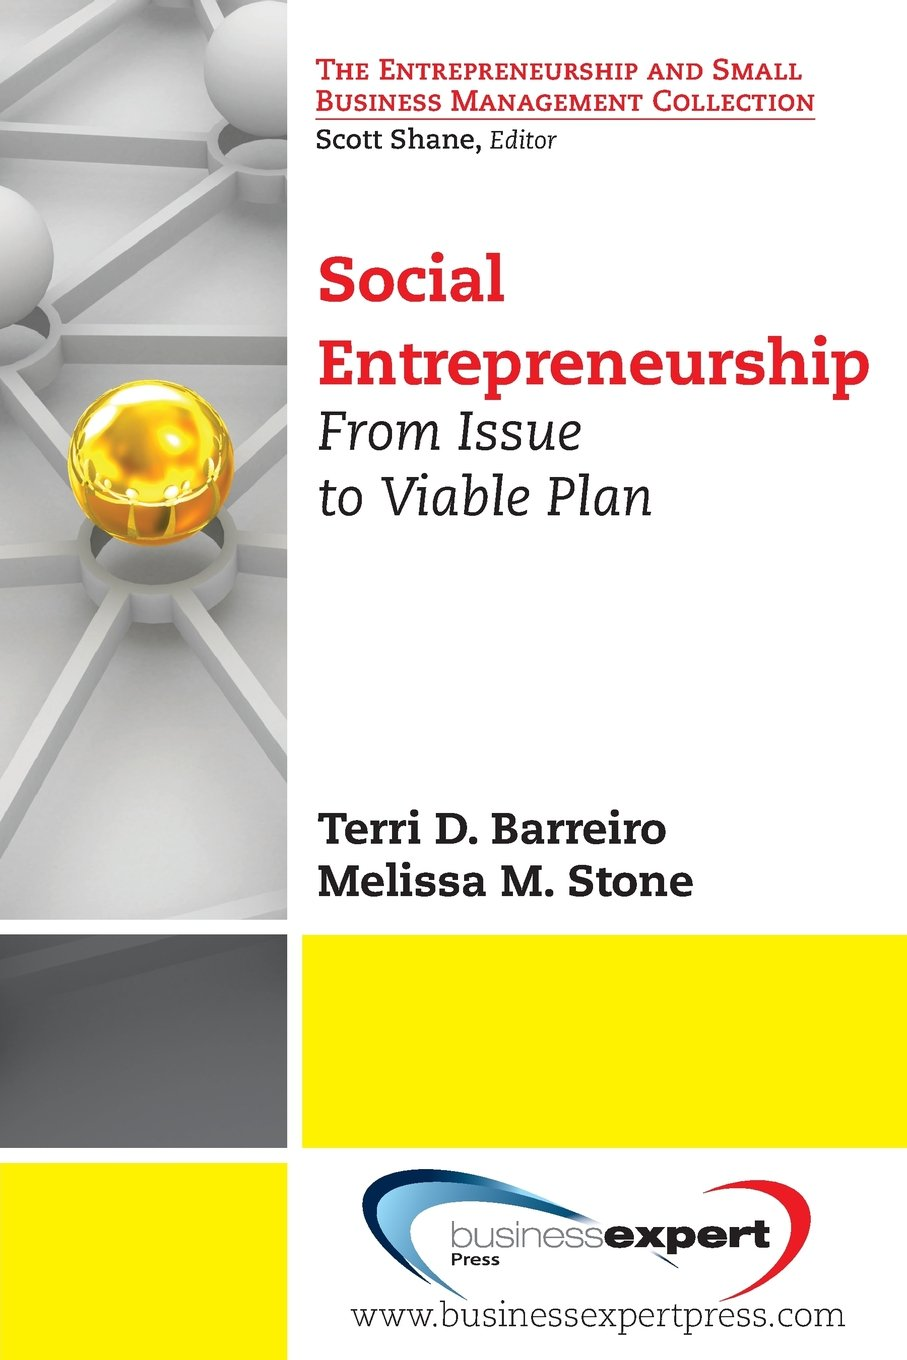 Social Entrepreneurship: From Issue to Viable Plan (Small Business Management and Entrepreneurship) (The Entrepreneurship and Small Business Management Collection)